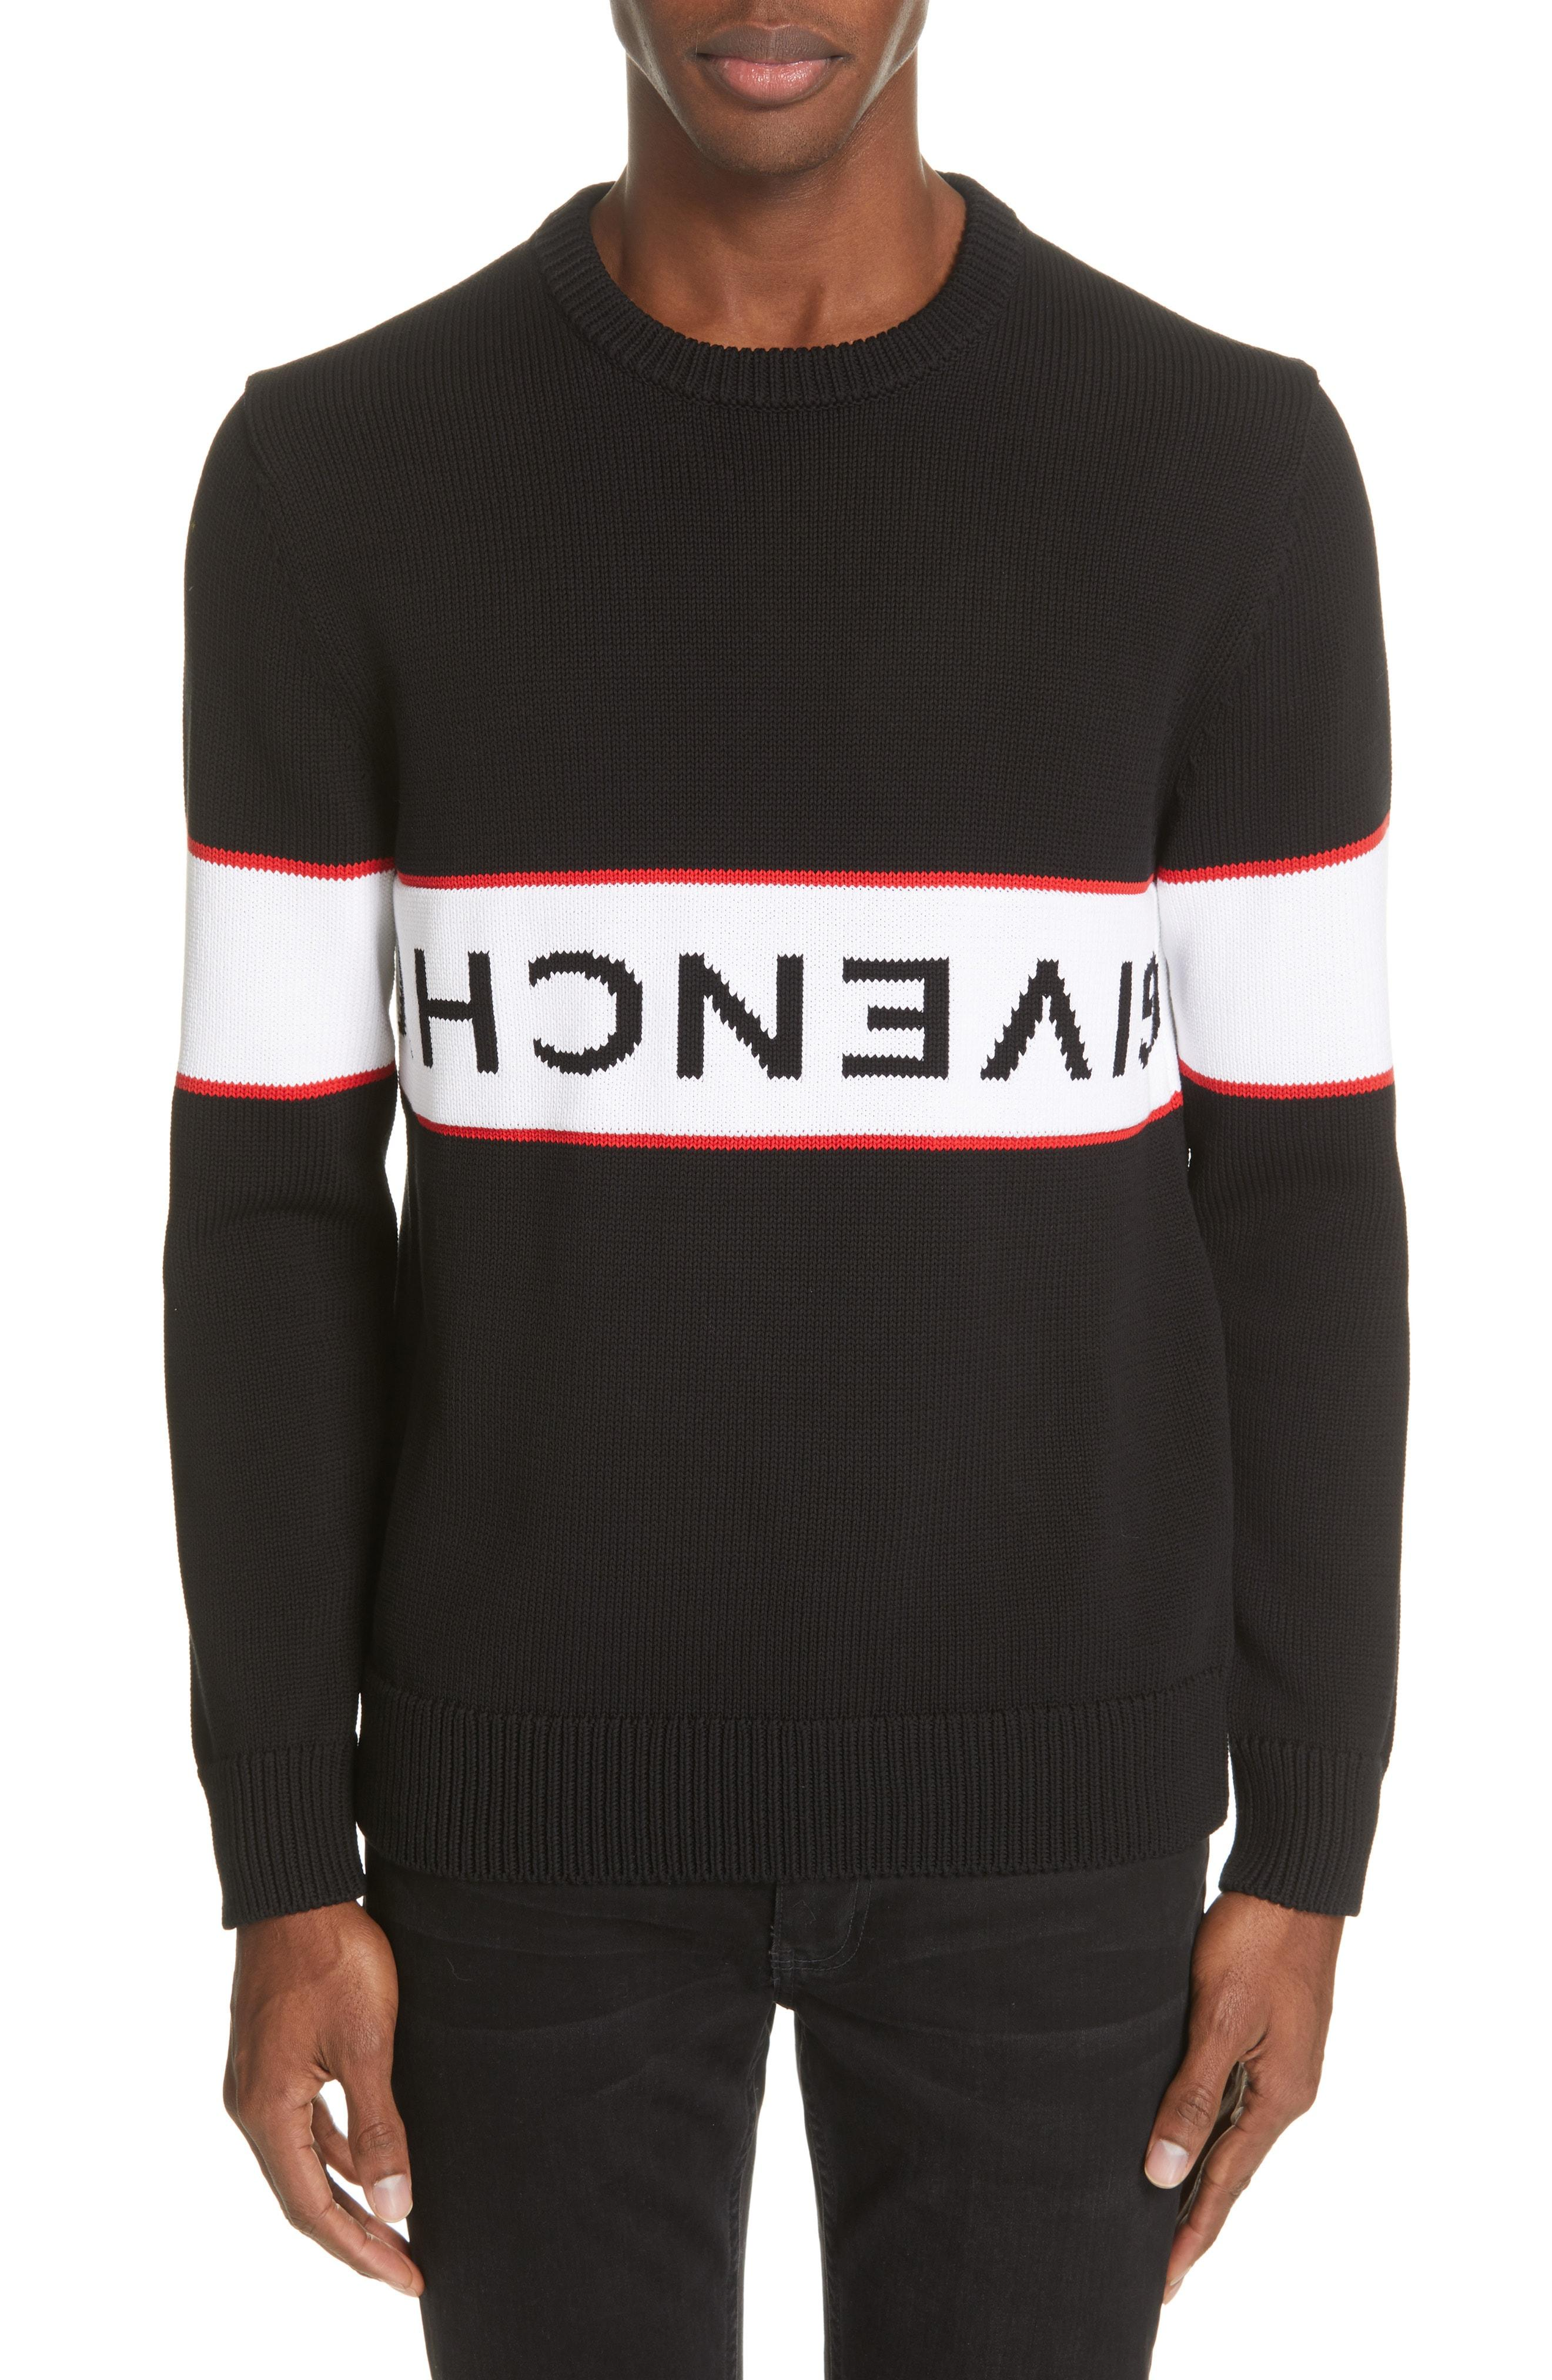 Down Lyst Givenchy For Men Black Sweater In Logo Upside qWZPwBxT4